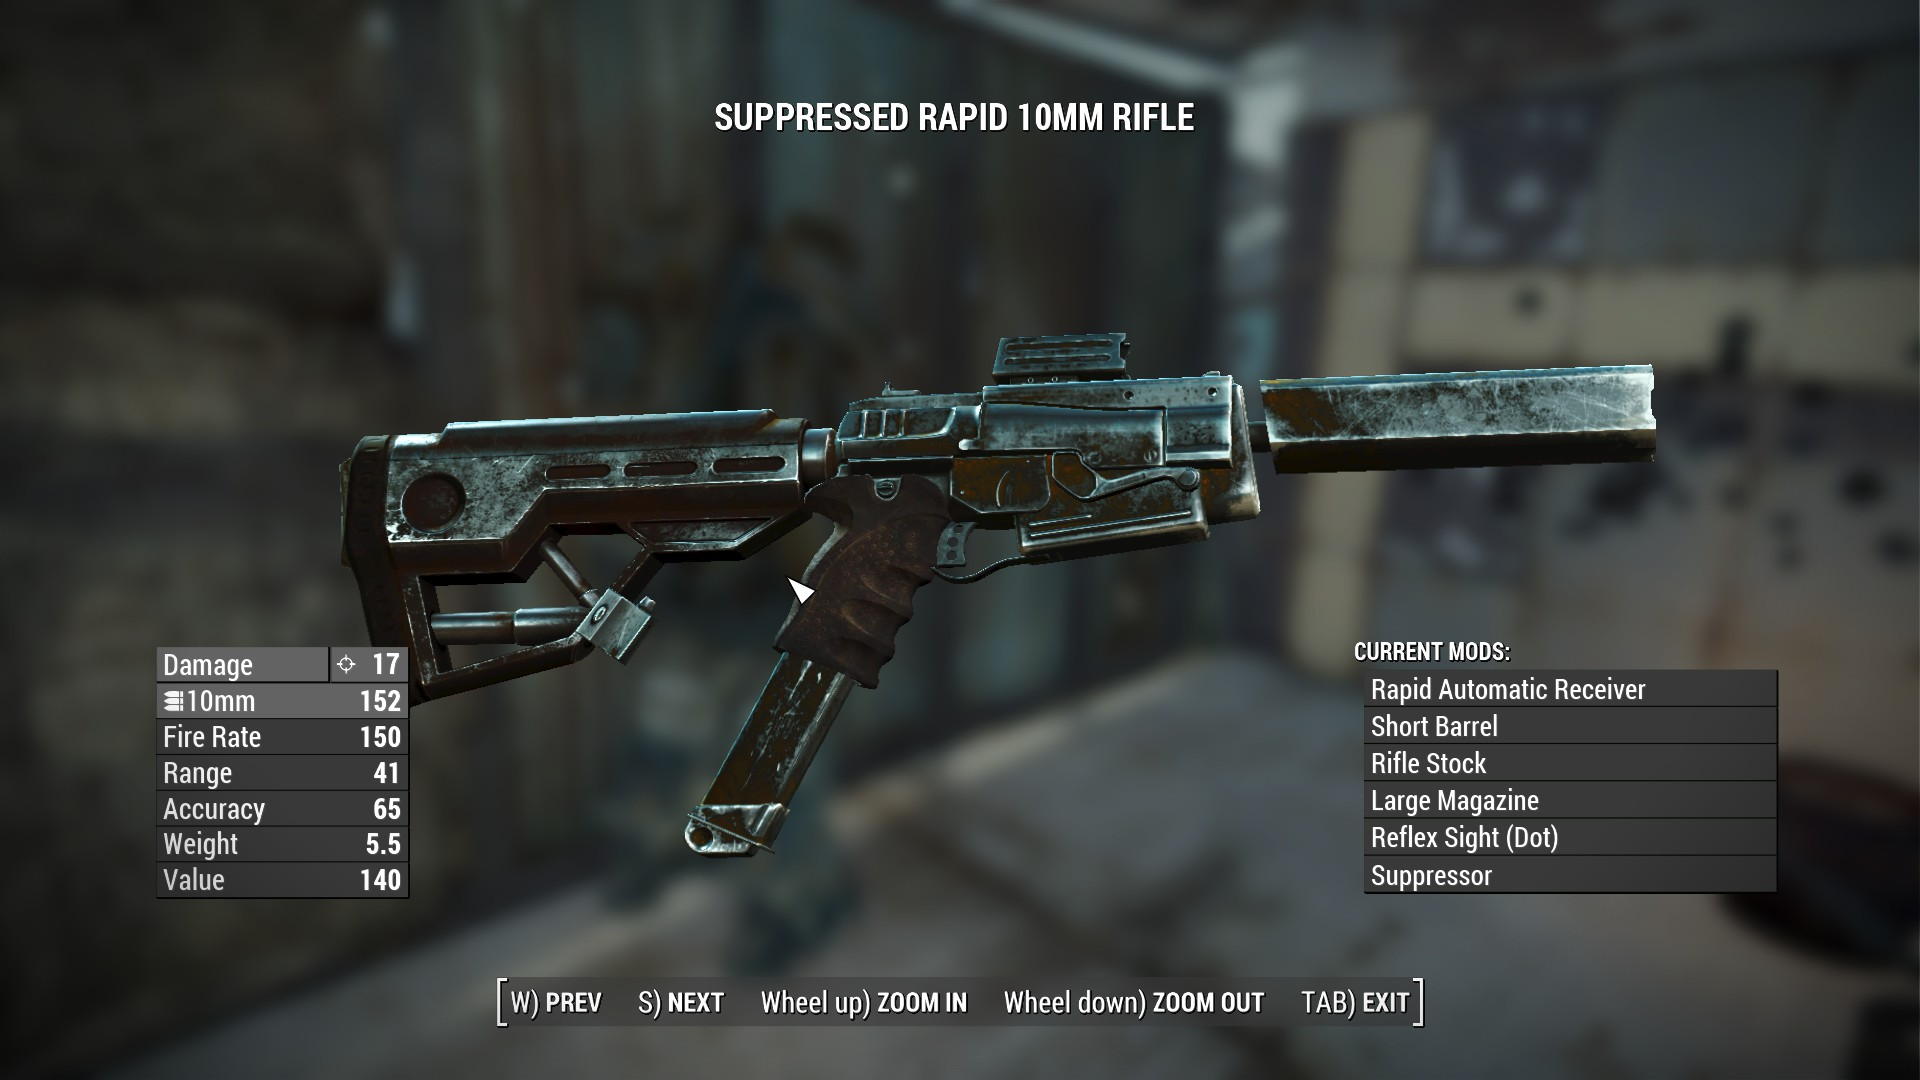 Fallout 4 Mods Best Fallout 4 Mods For Pc Xbox One Ps4 Page 8 Shorter stocks on rifles lower ap cost at the reduction of accuracy (particularly manual sniping). best fallout 4 mods for pc xbox one